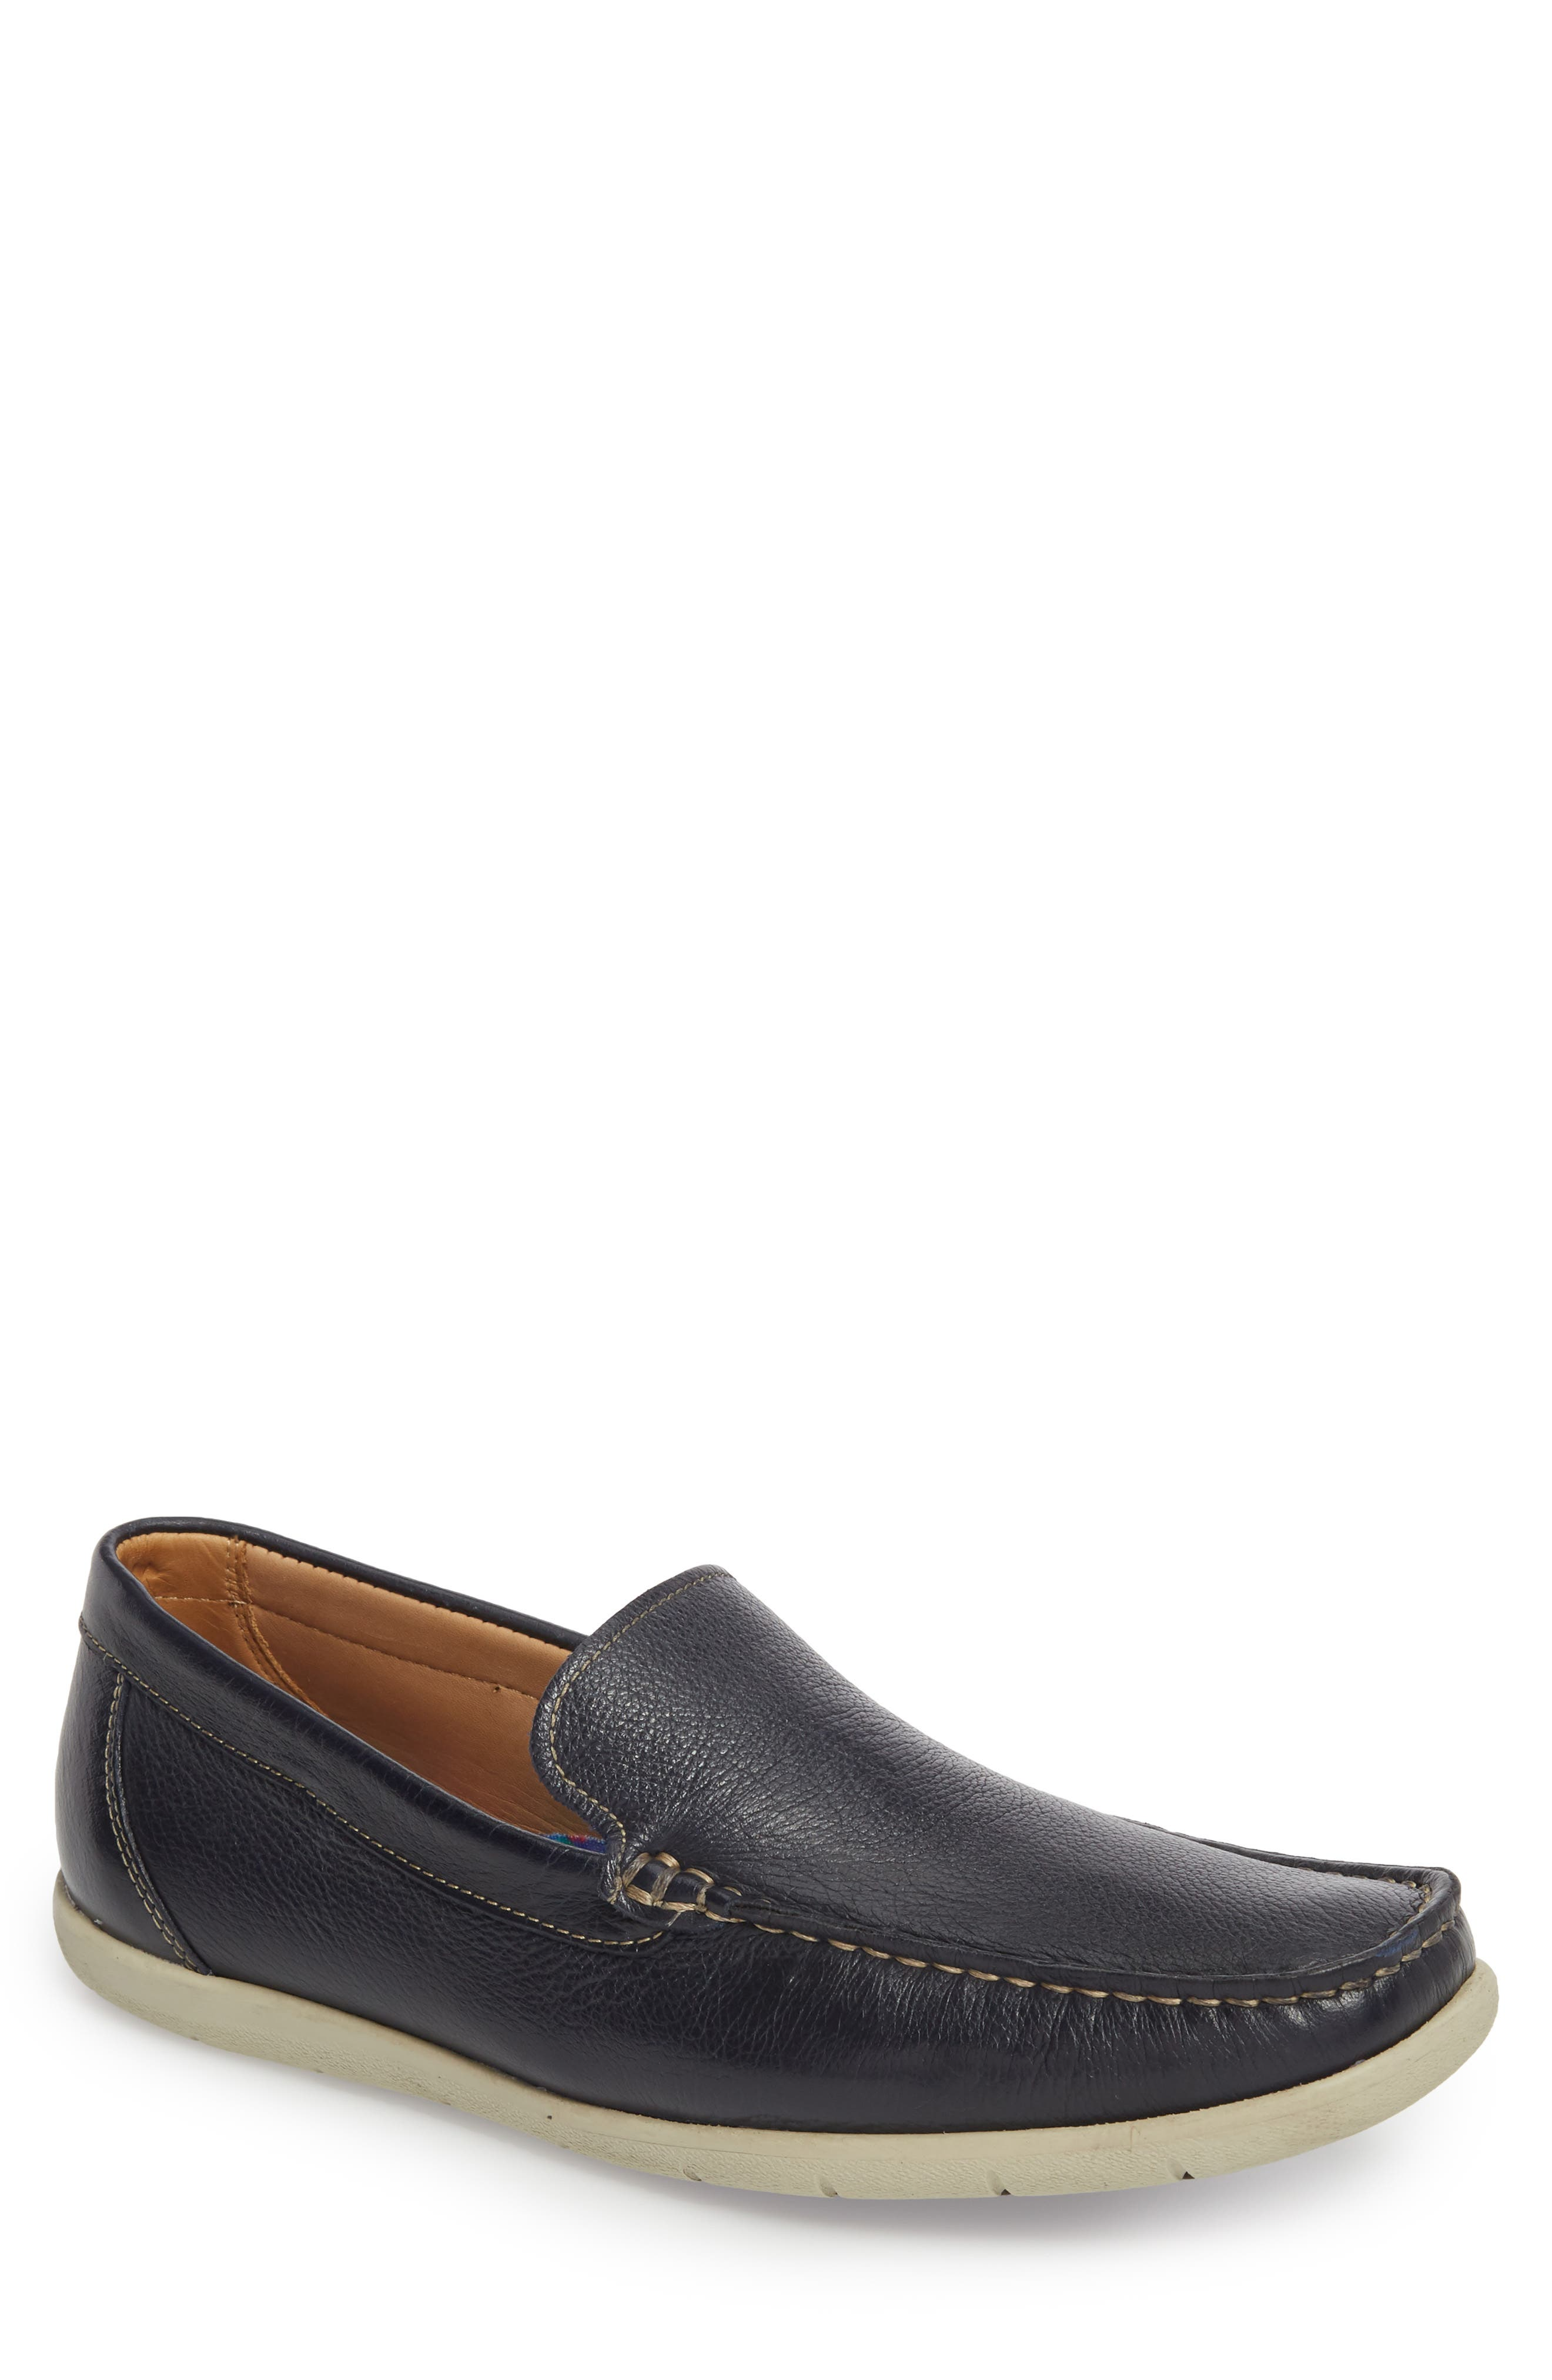 Calistoga Loafer,                         Main,                         color, Navy Leather